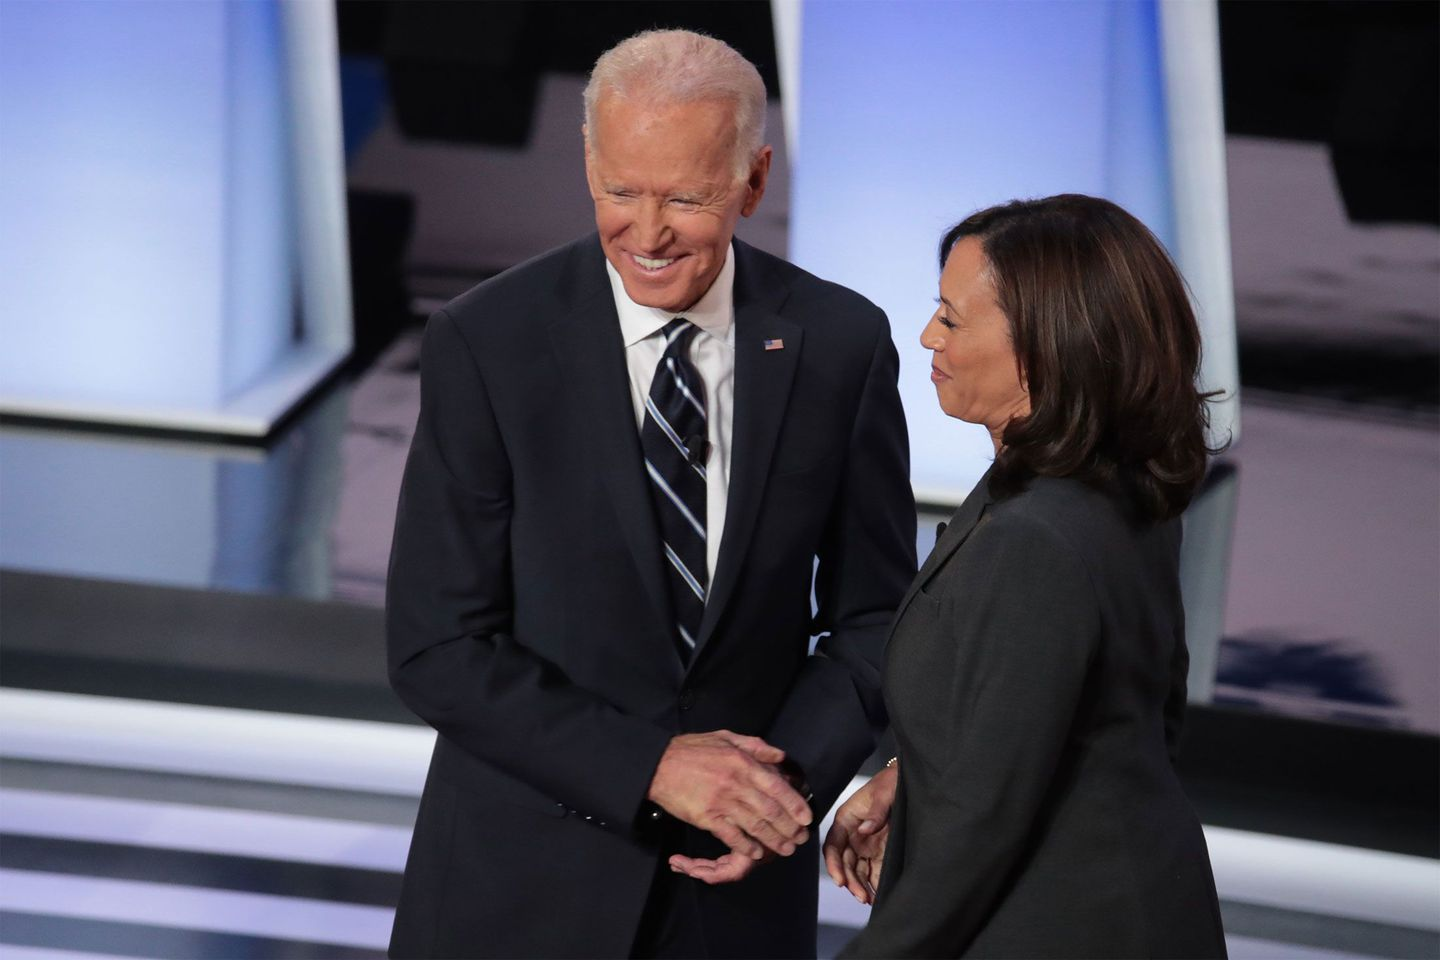 Kamala Harris Poses Pitfalls To Biden As Potential Vp Pick The Boston Globe